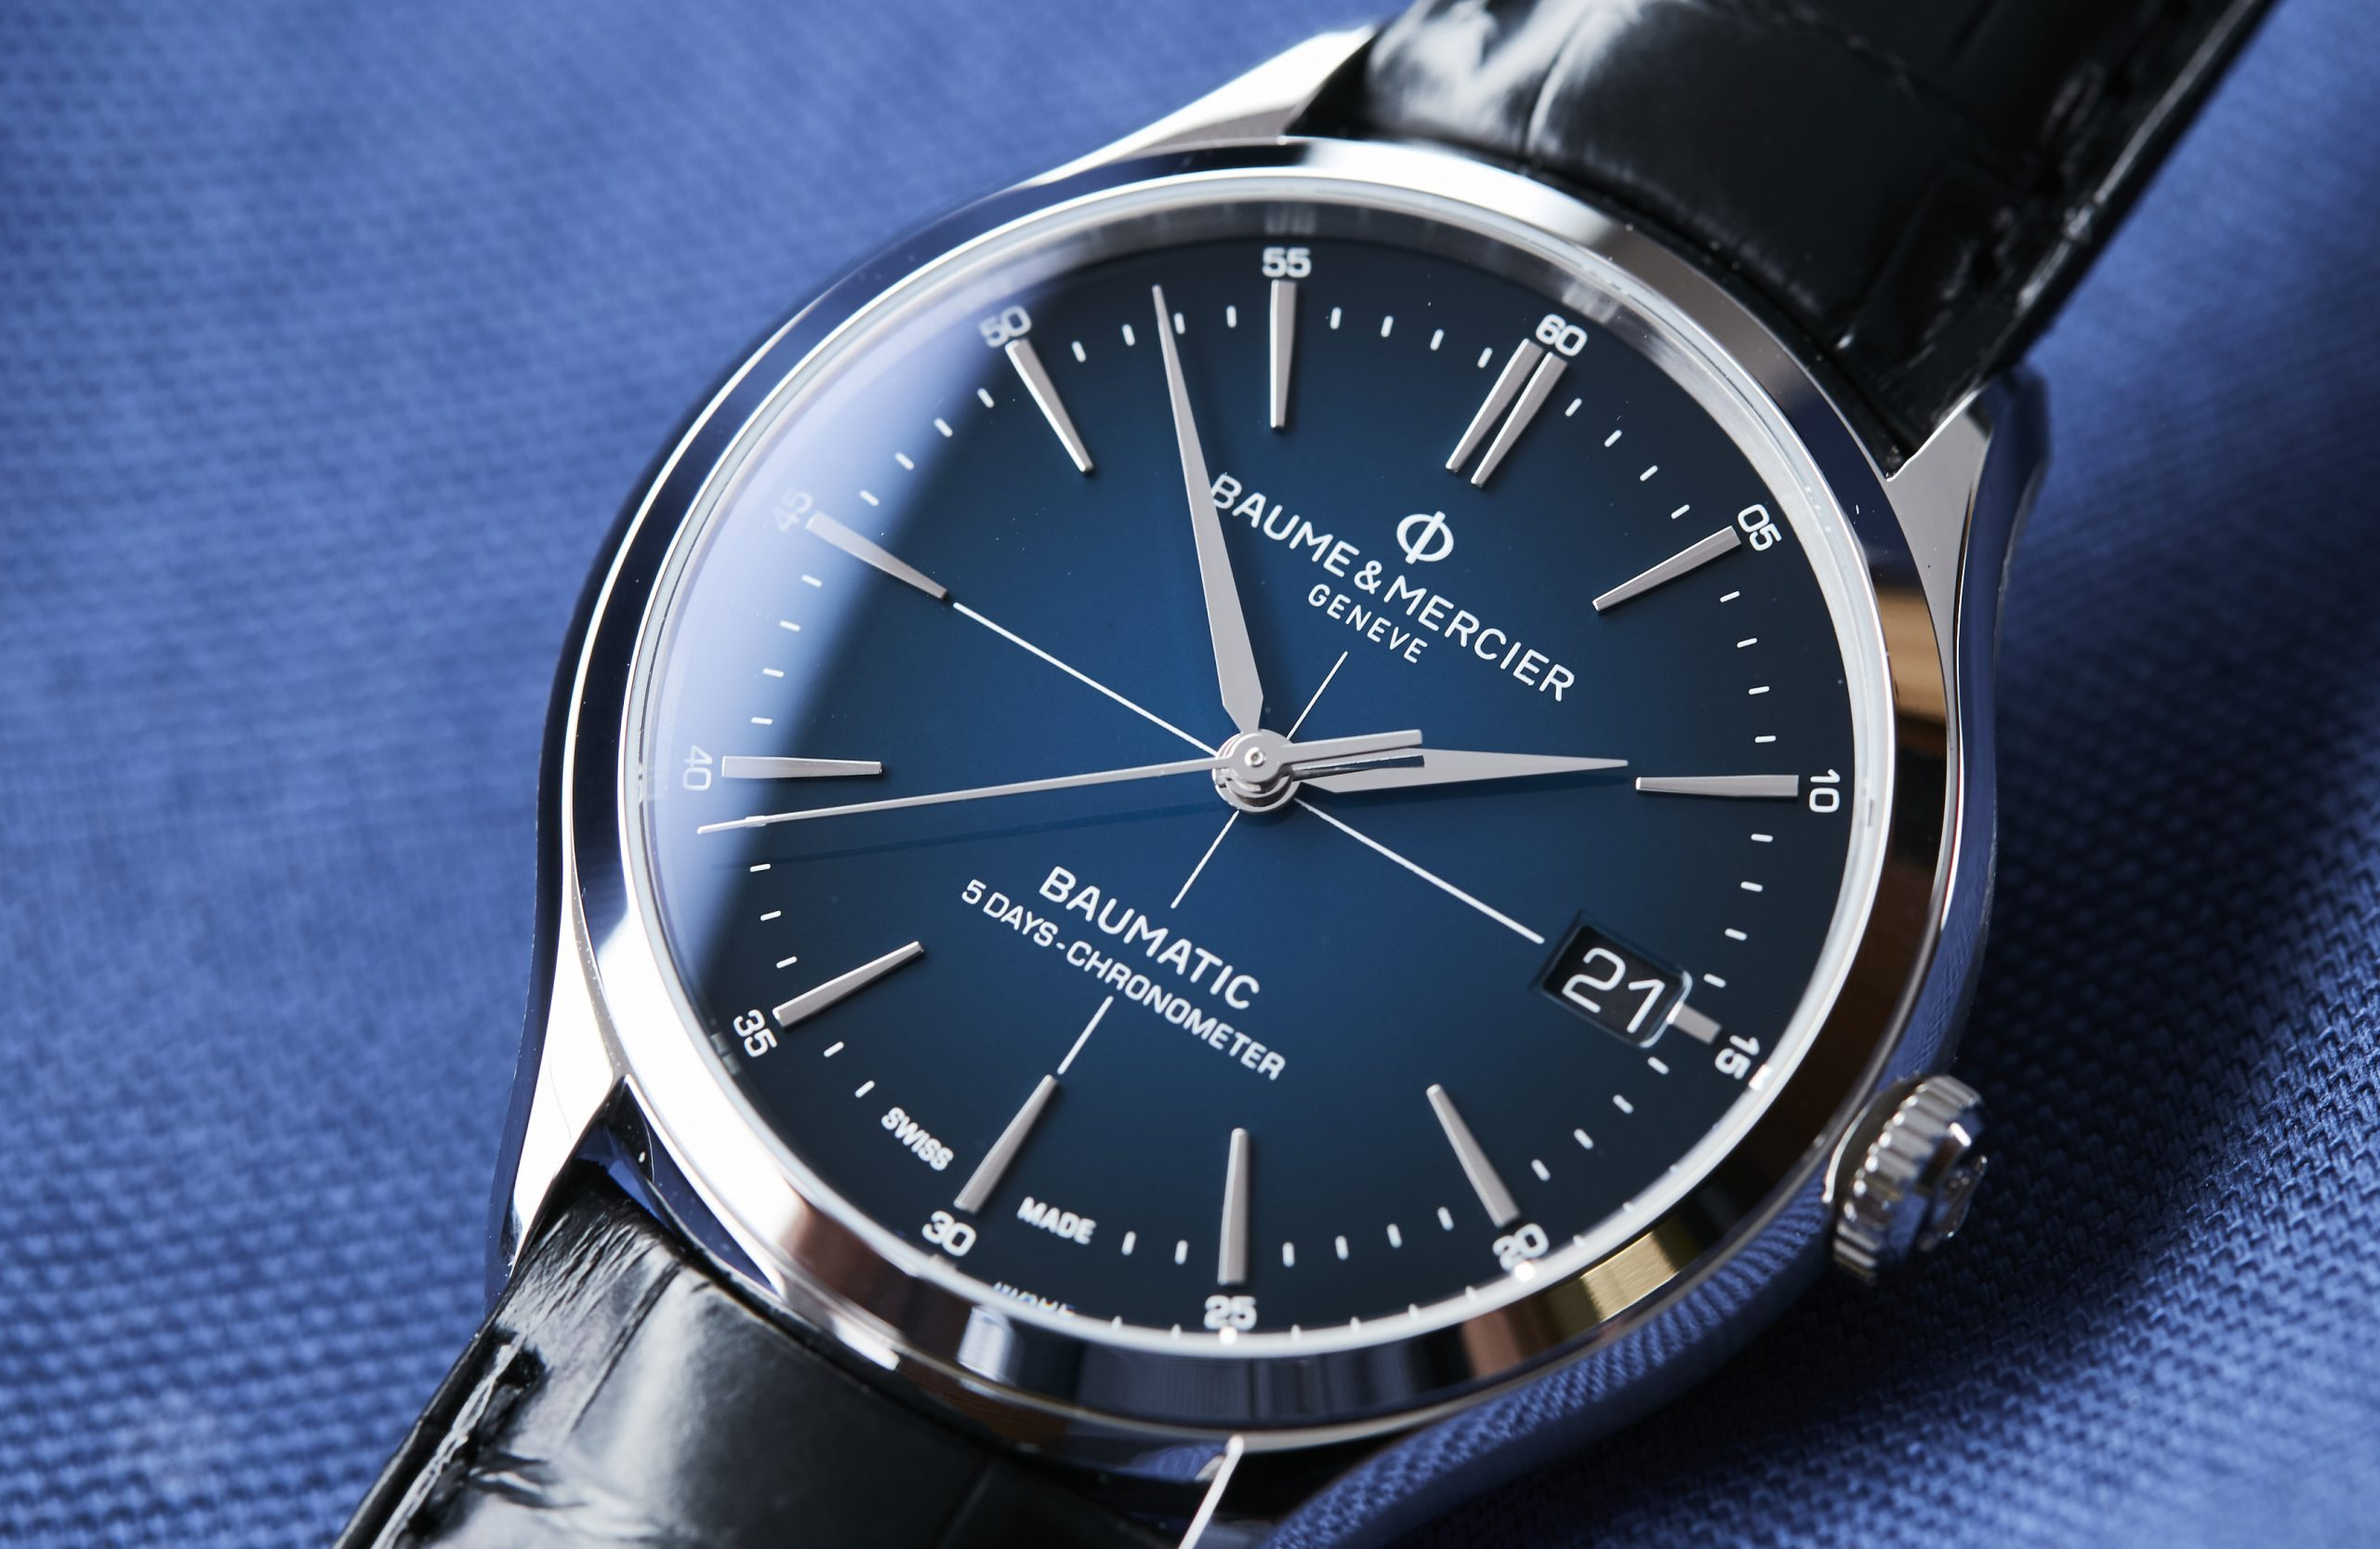 A powerful demonstration of why magnetism matters, with the Baume & Mercier Baumatic